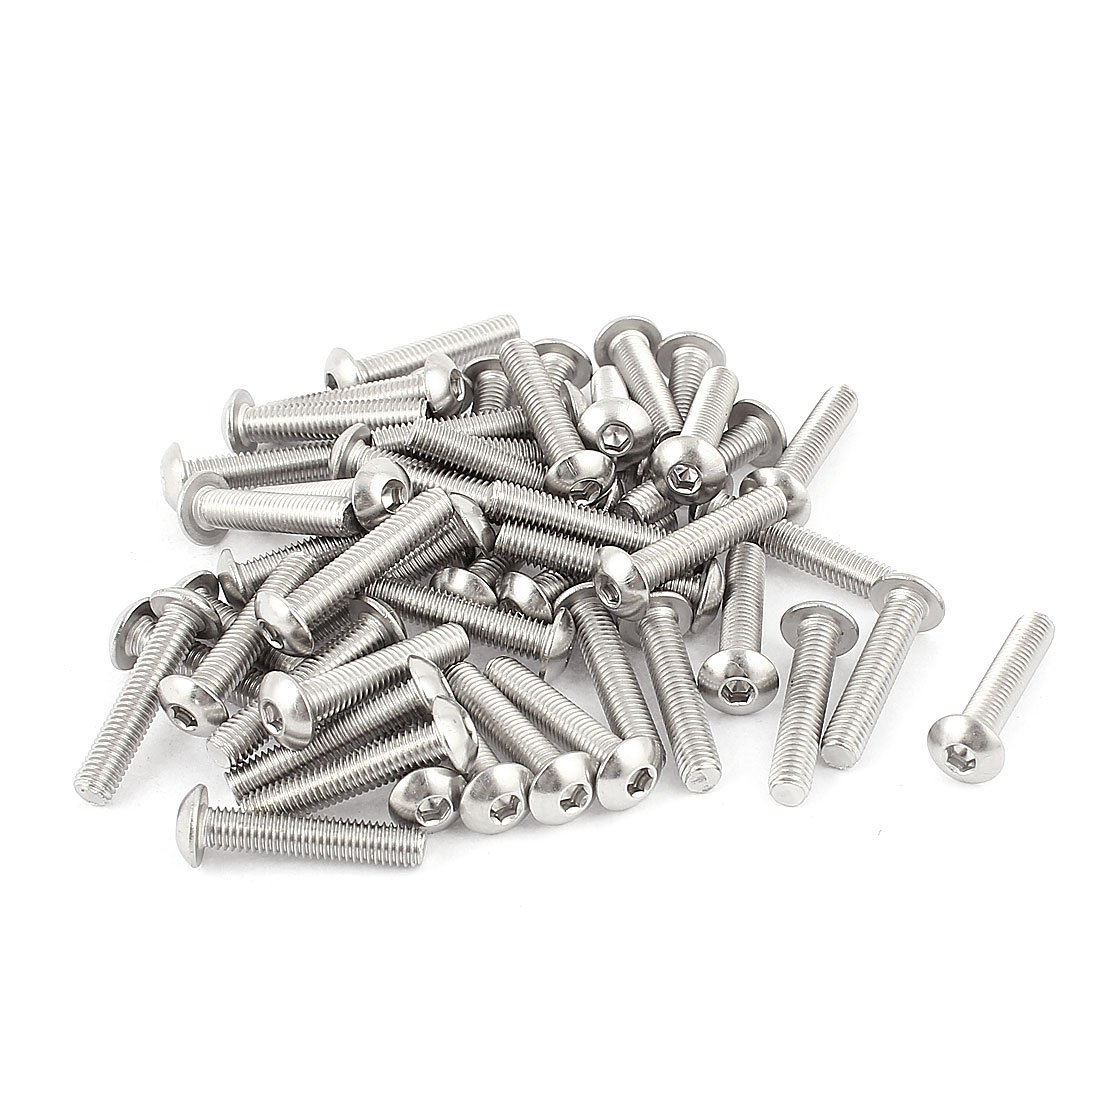 uxcell M5x25mm Stainless Steel Hex Socket Button Head Screws 50 Pcs